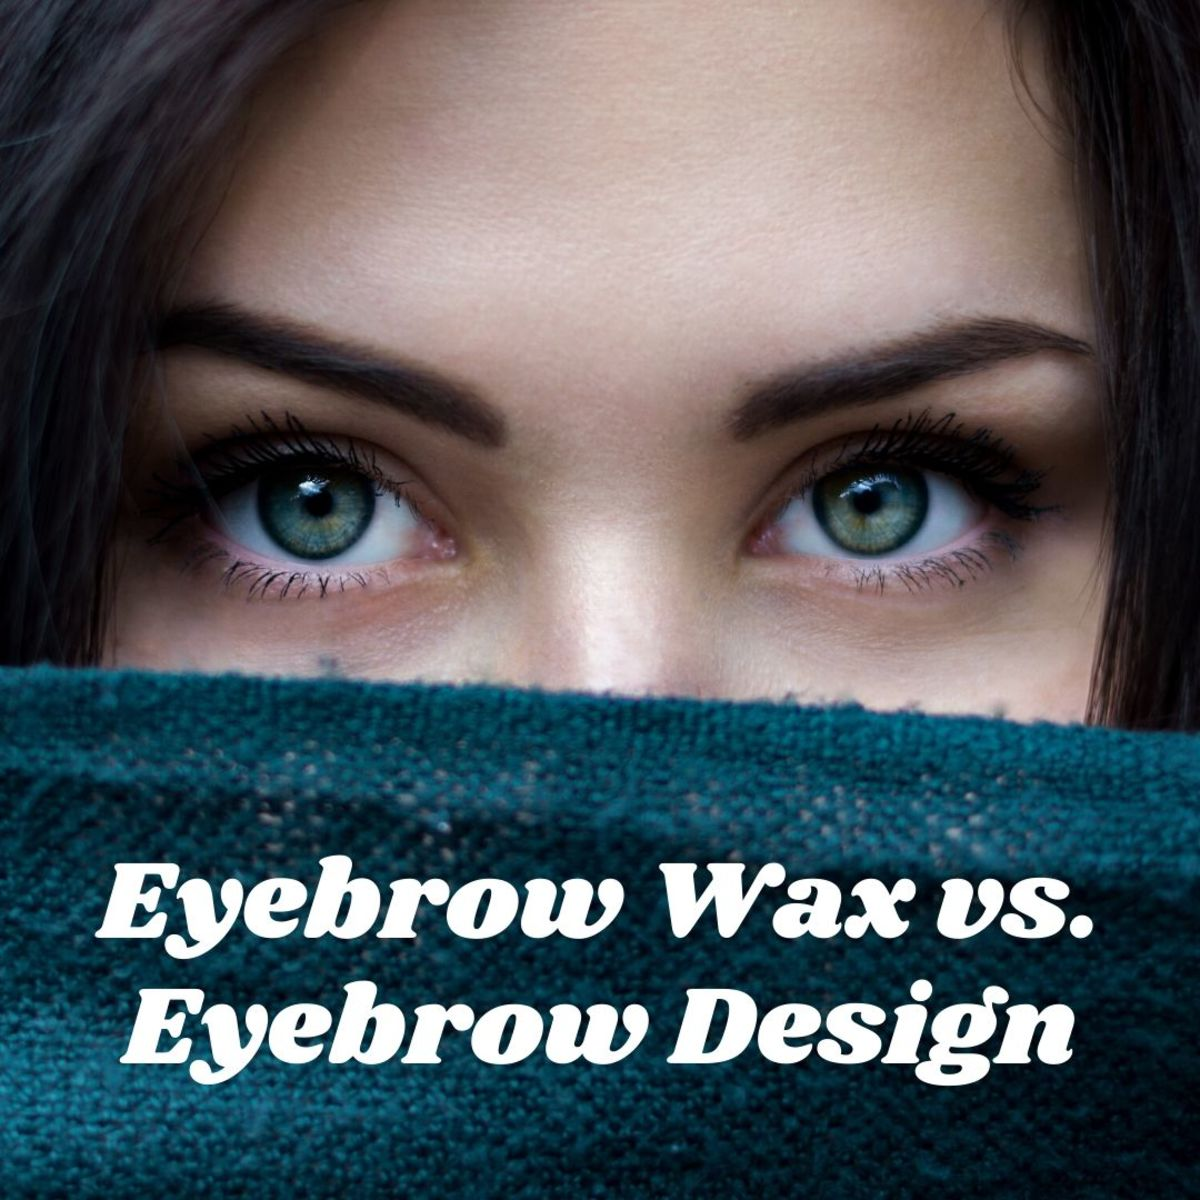 What Is the Difference Between an Eyebrow Wax and an Eyebrow Design?